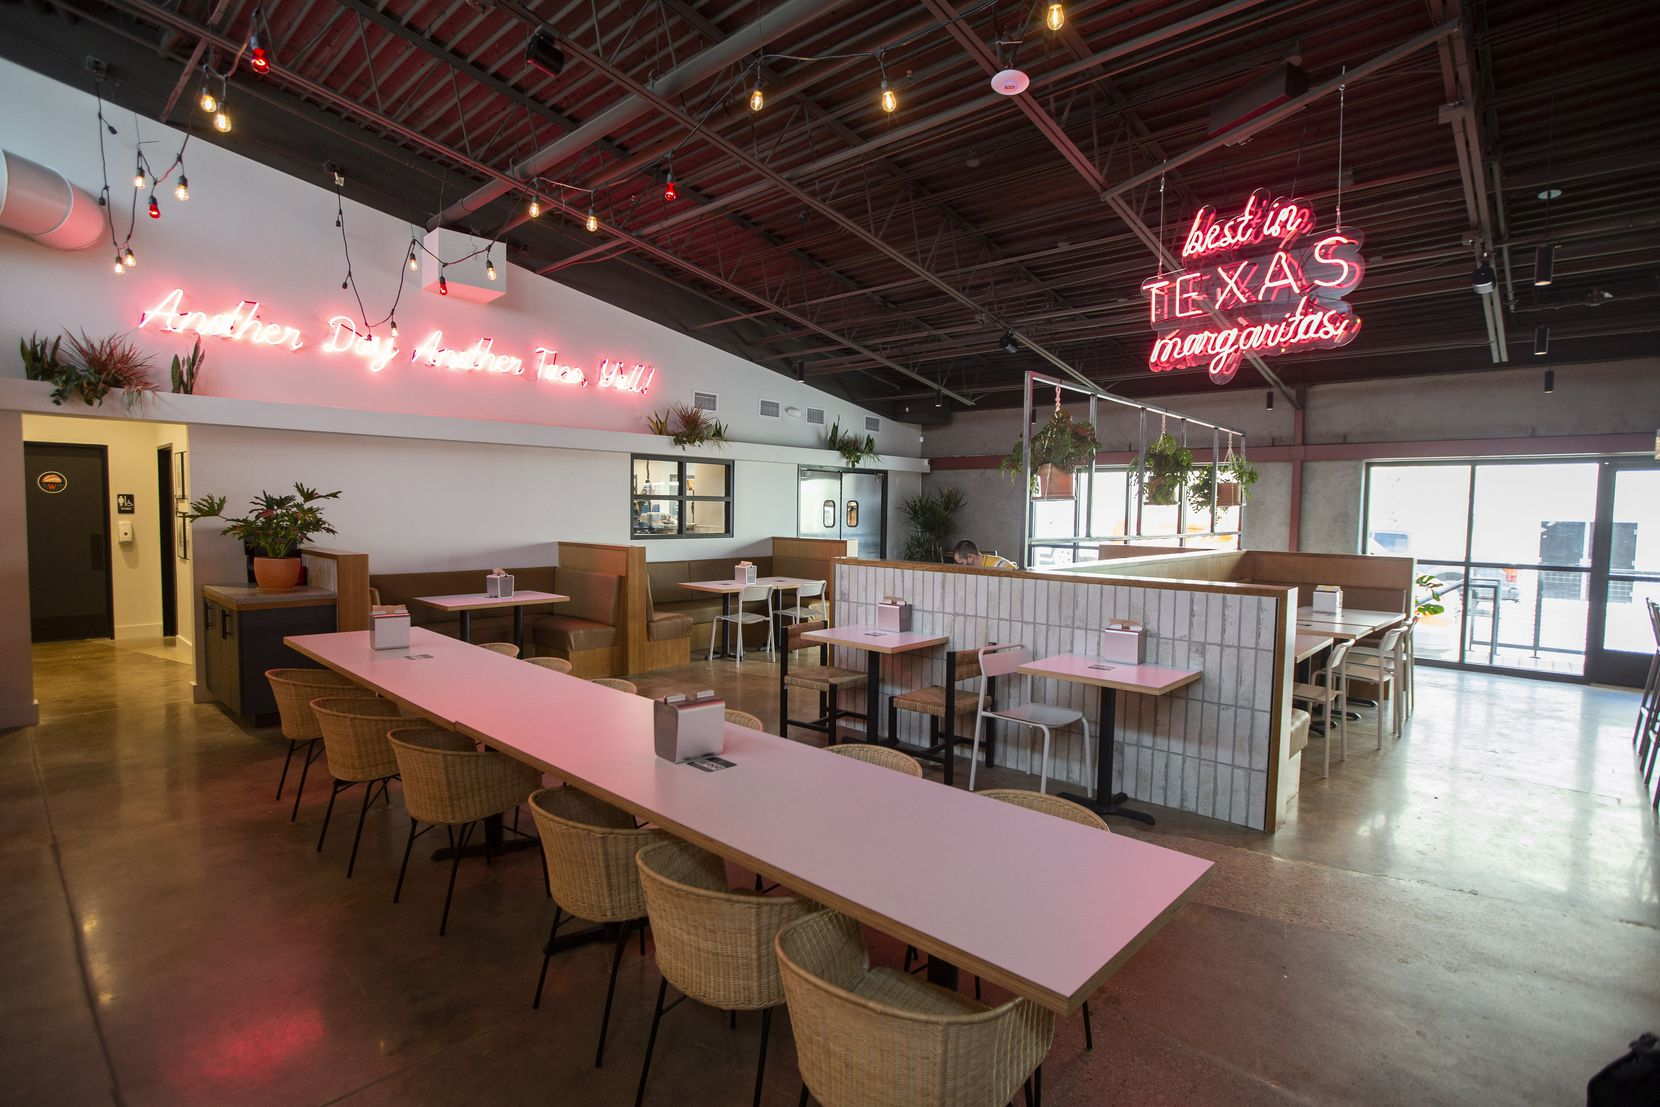 Indoor dining area at Taco Heads in Fort Worth